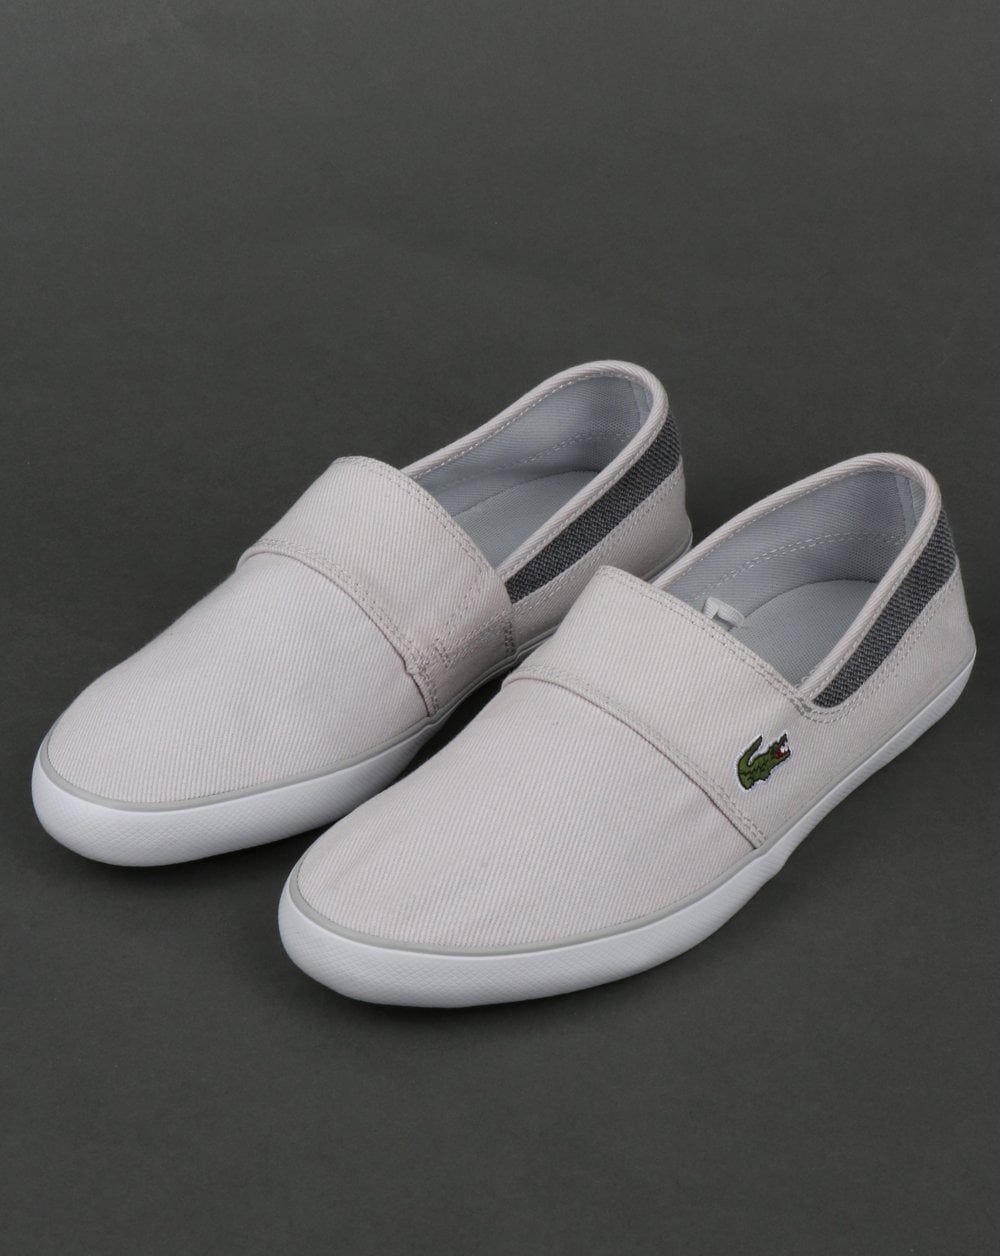 2f1a5bf24 Lacoste Lacoste Marice Slip On Espadrille Grey Grey